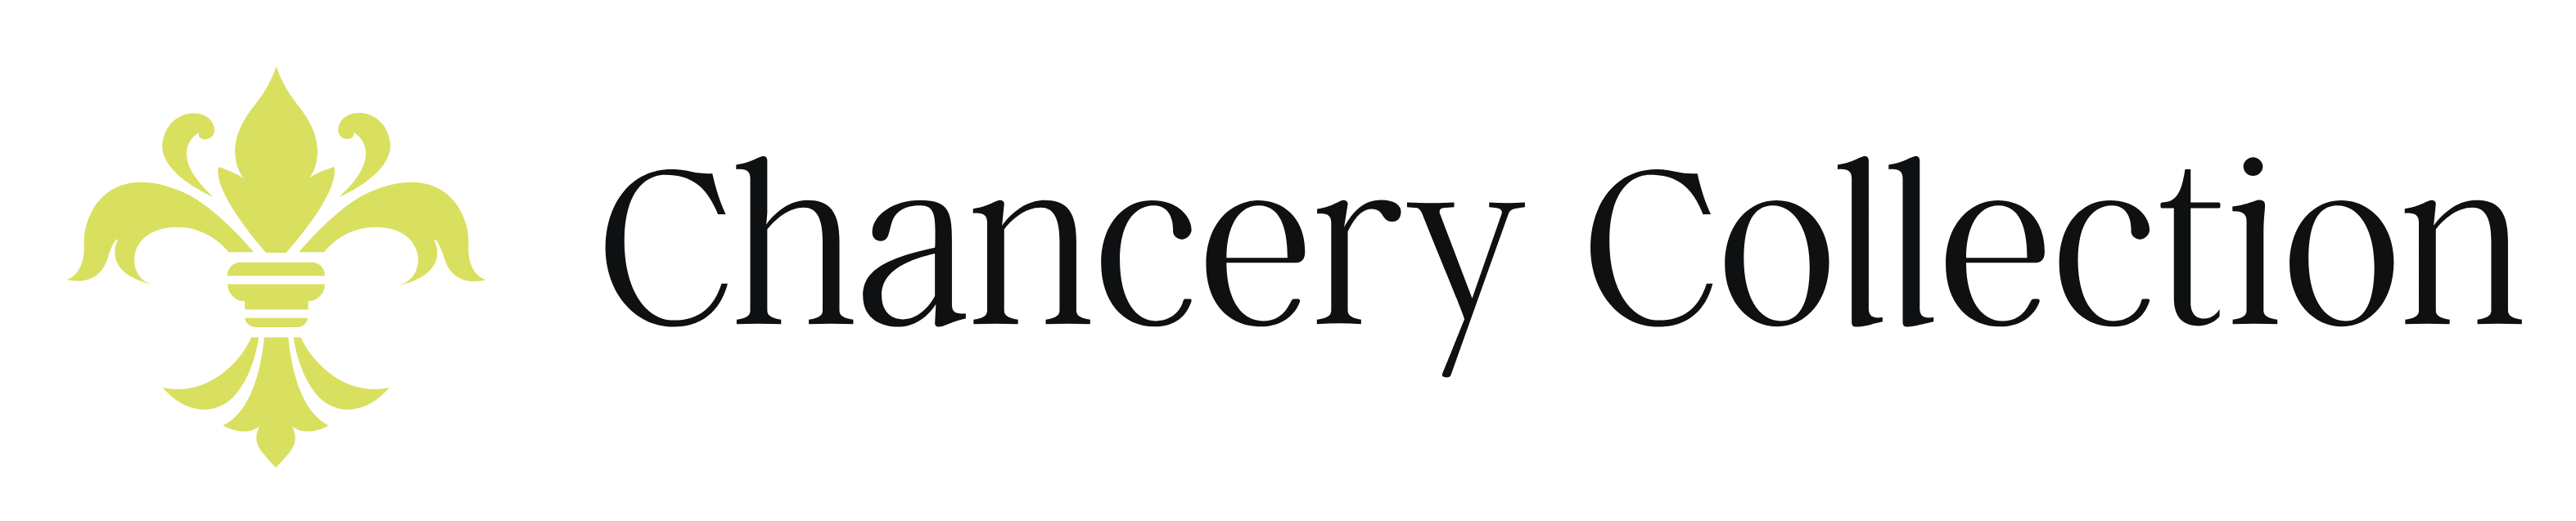 Chancery Collection